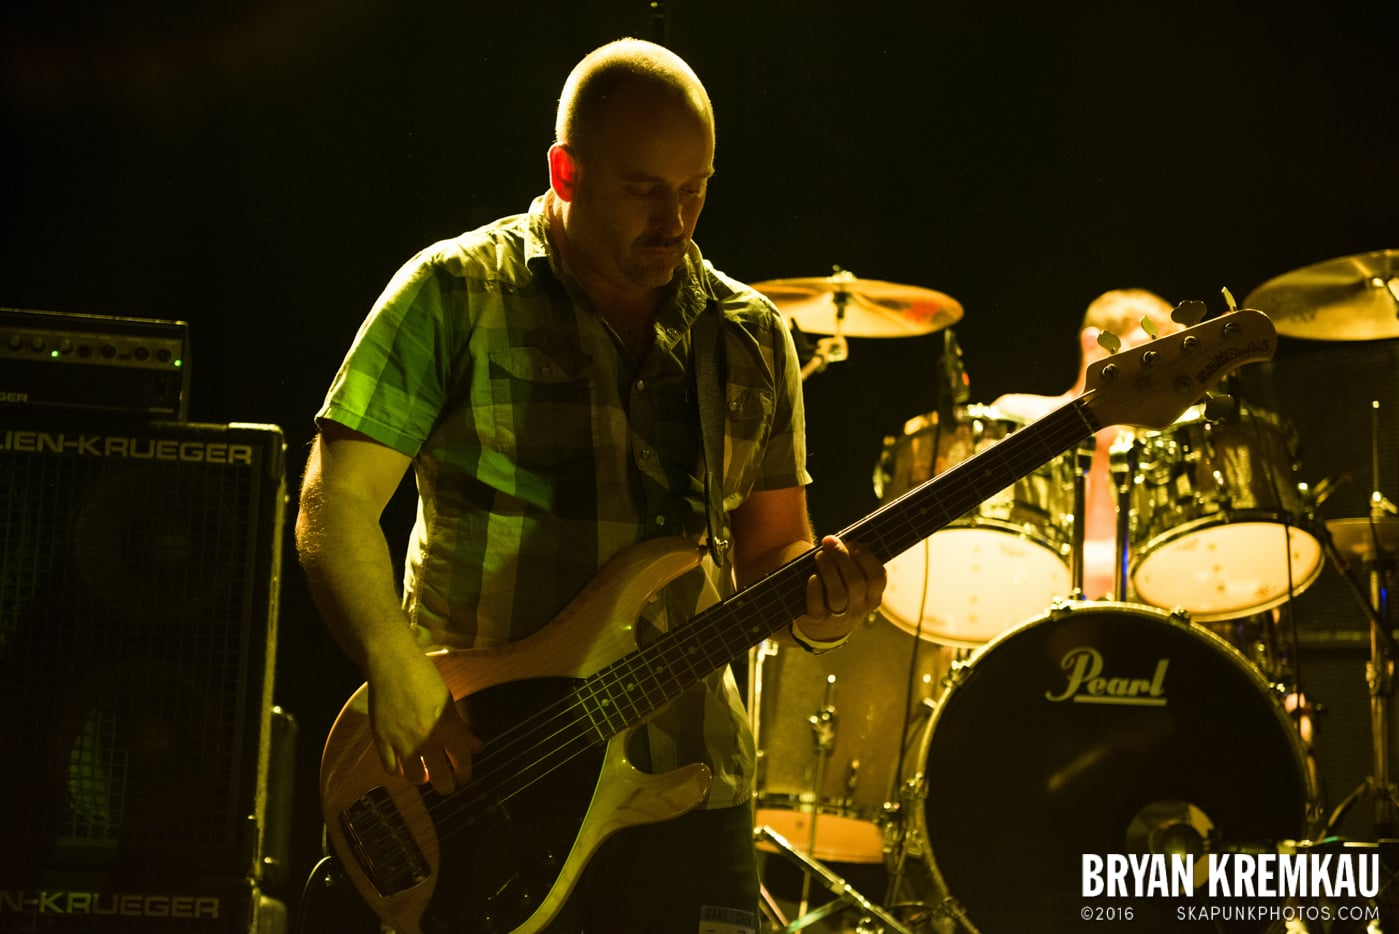 Thumper @ Apple Stomp: Day 2, Irving Plaza, NYC - June 1st 2013 - Bryan Kremkau (24)